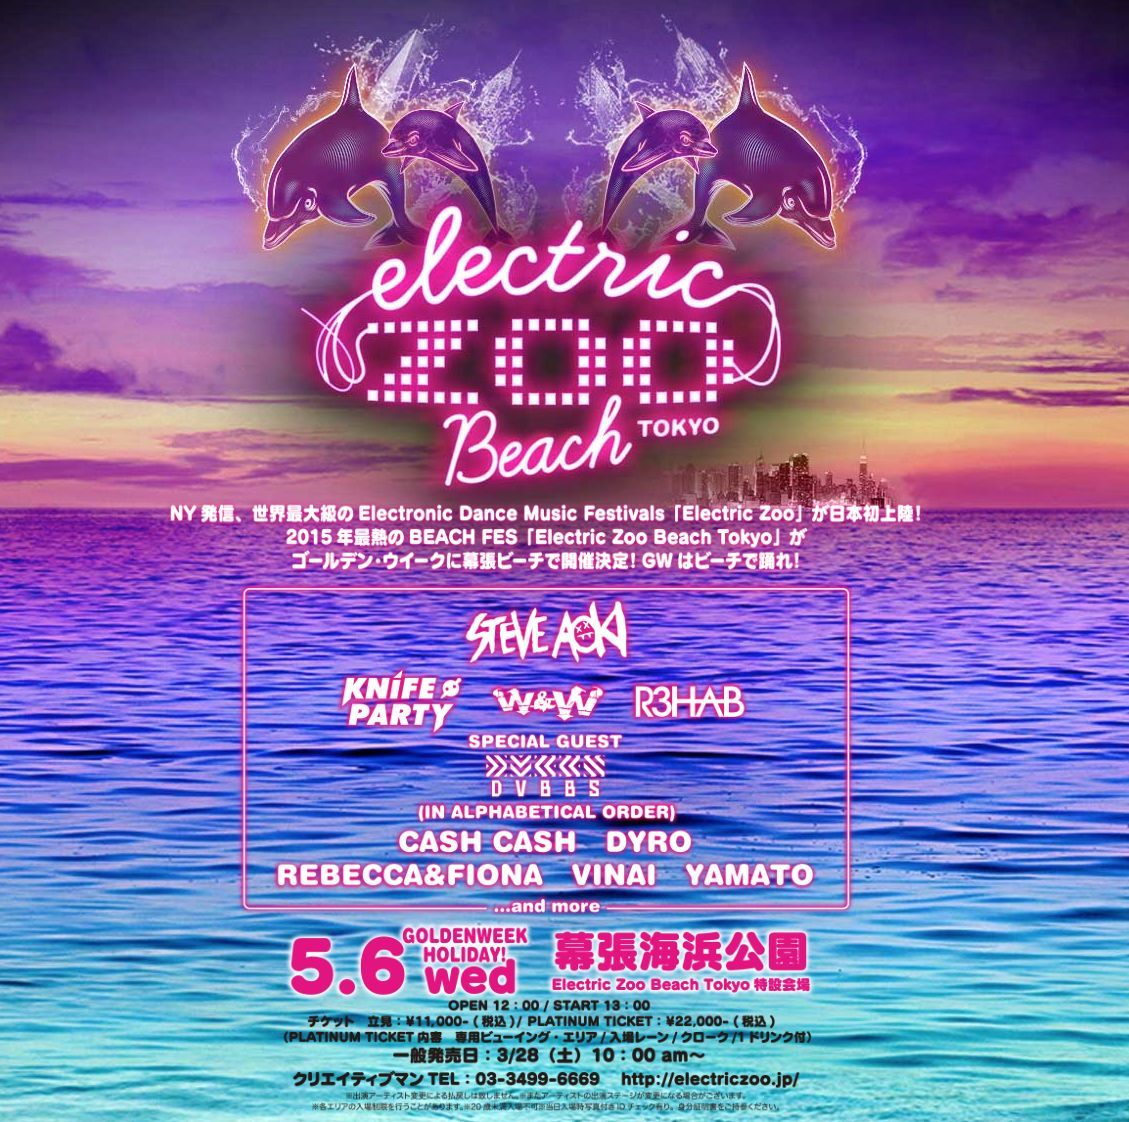 Electric Zoo Beach